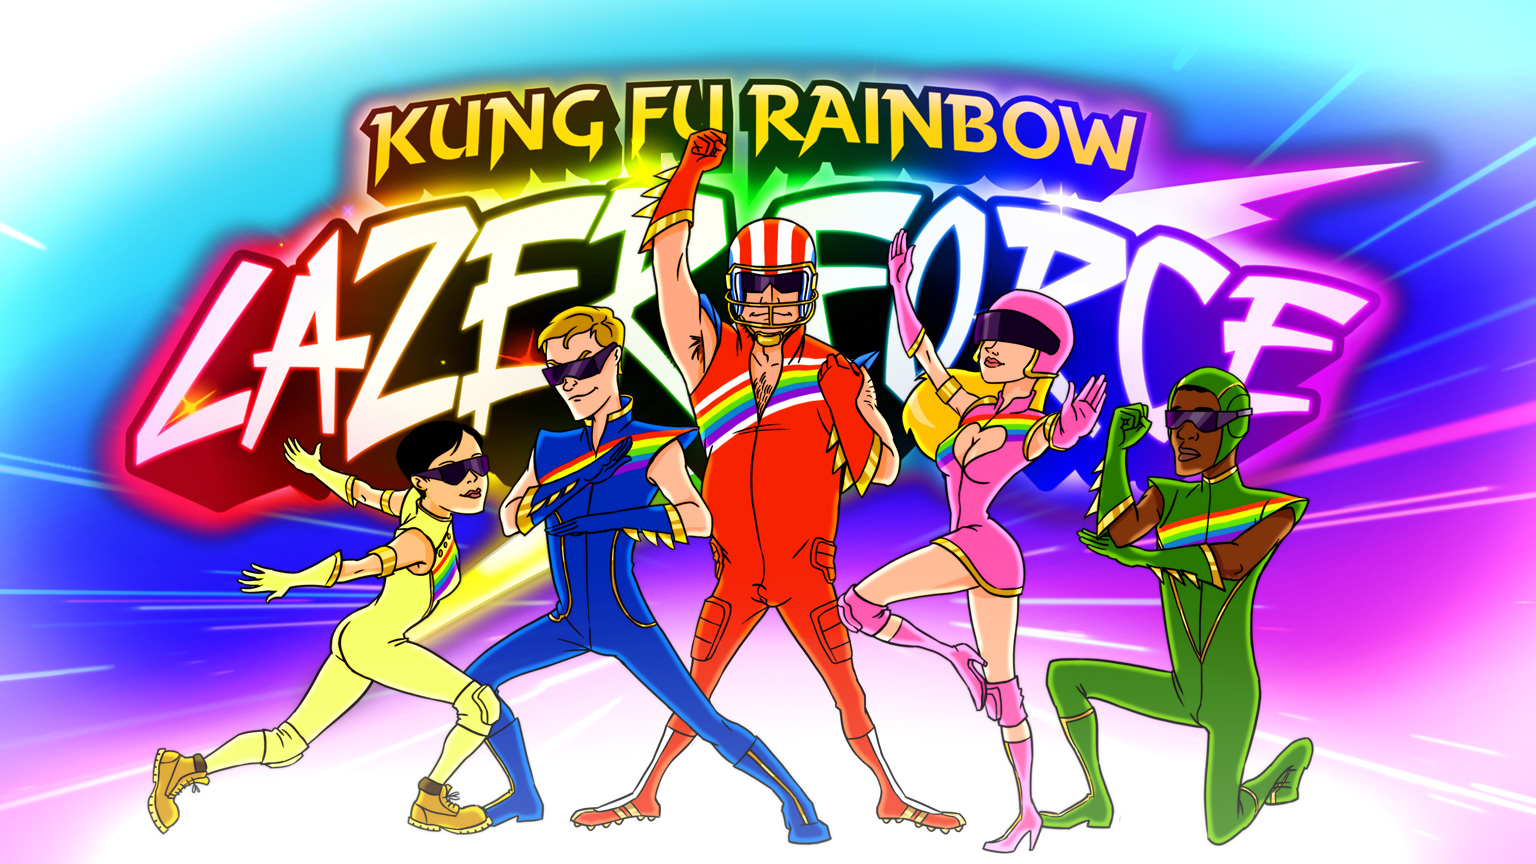 File:KungFuRainbowLazerforce-GTAV.jpg